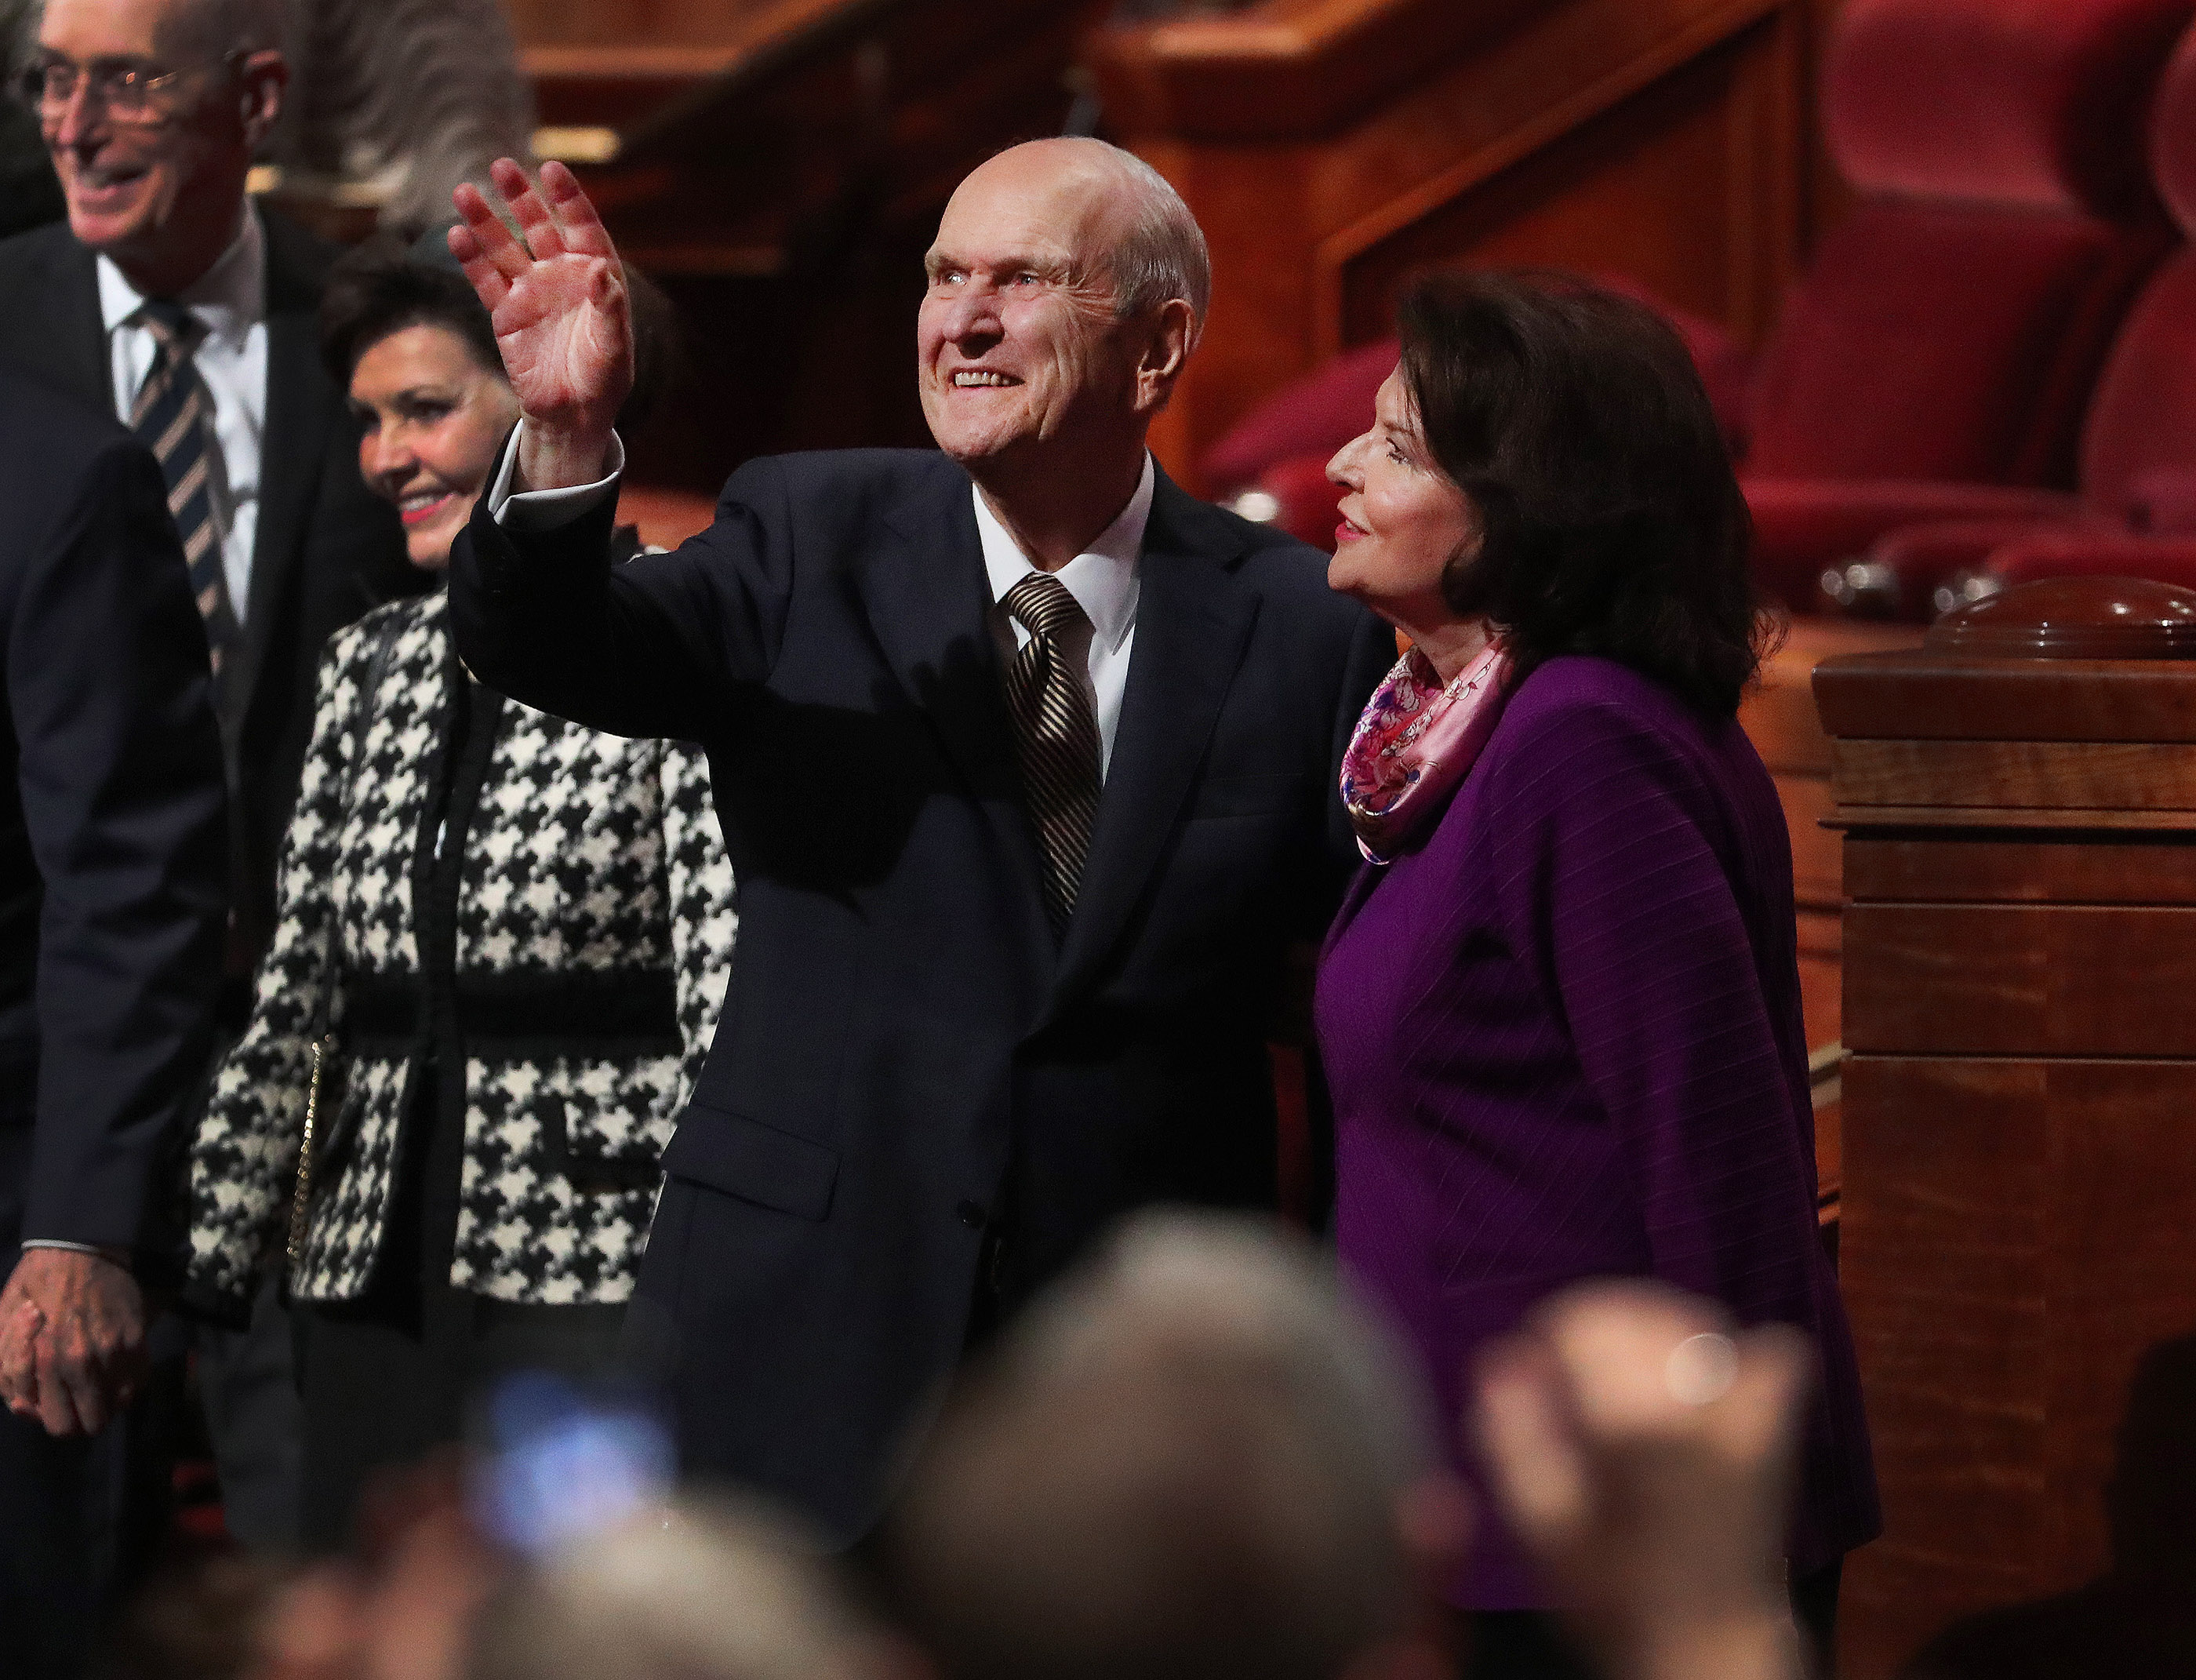 President Russell M. Nelson of The Church of Jesus Christ of Latter-day Saints and his wife, Sister Wendy Nelson, wave to attendees at the close of the 189th Annual General Conference of The Church of Jesus Christ of Latter-day Saints in Salt Lake City on Sunday, April 7, 2019.